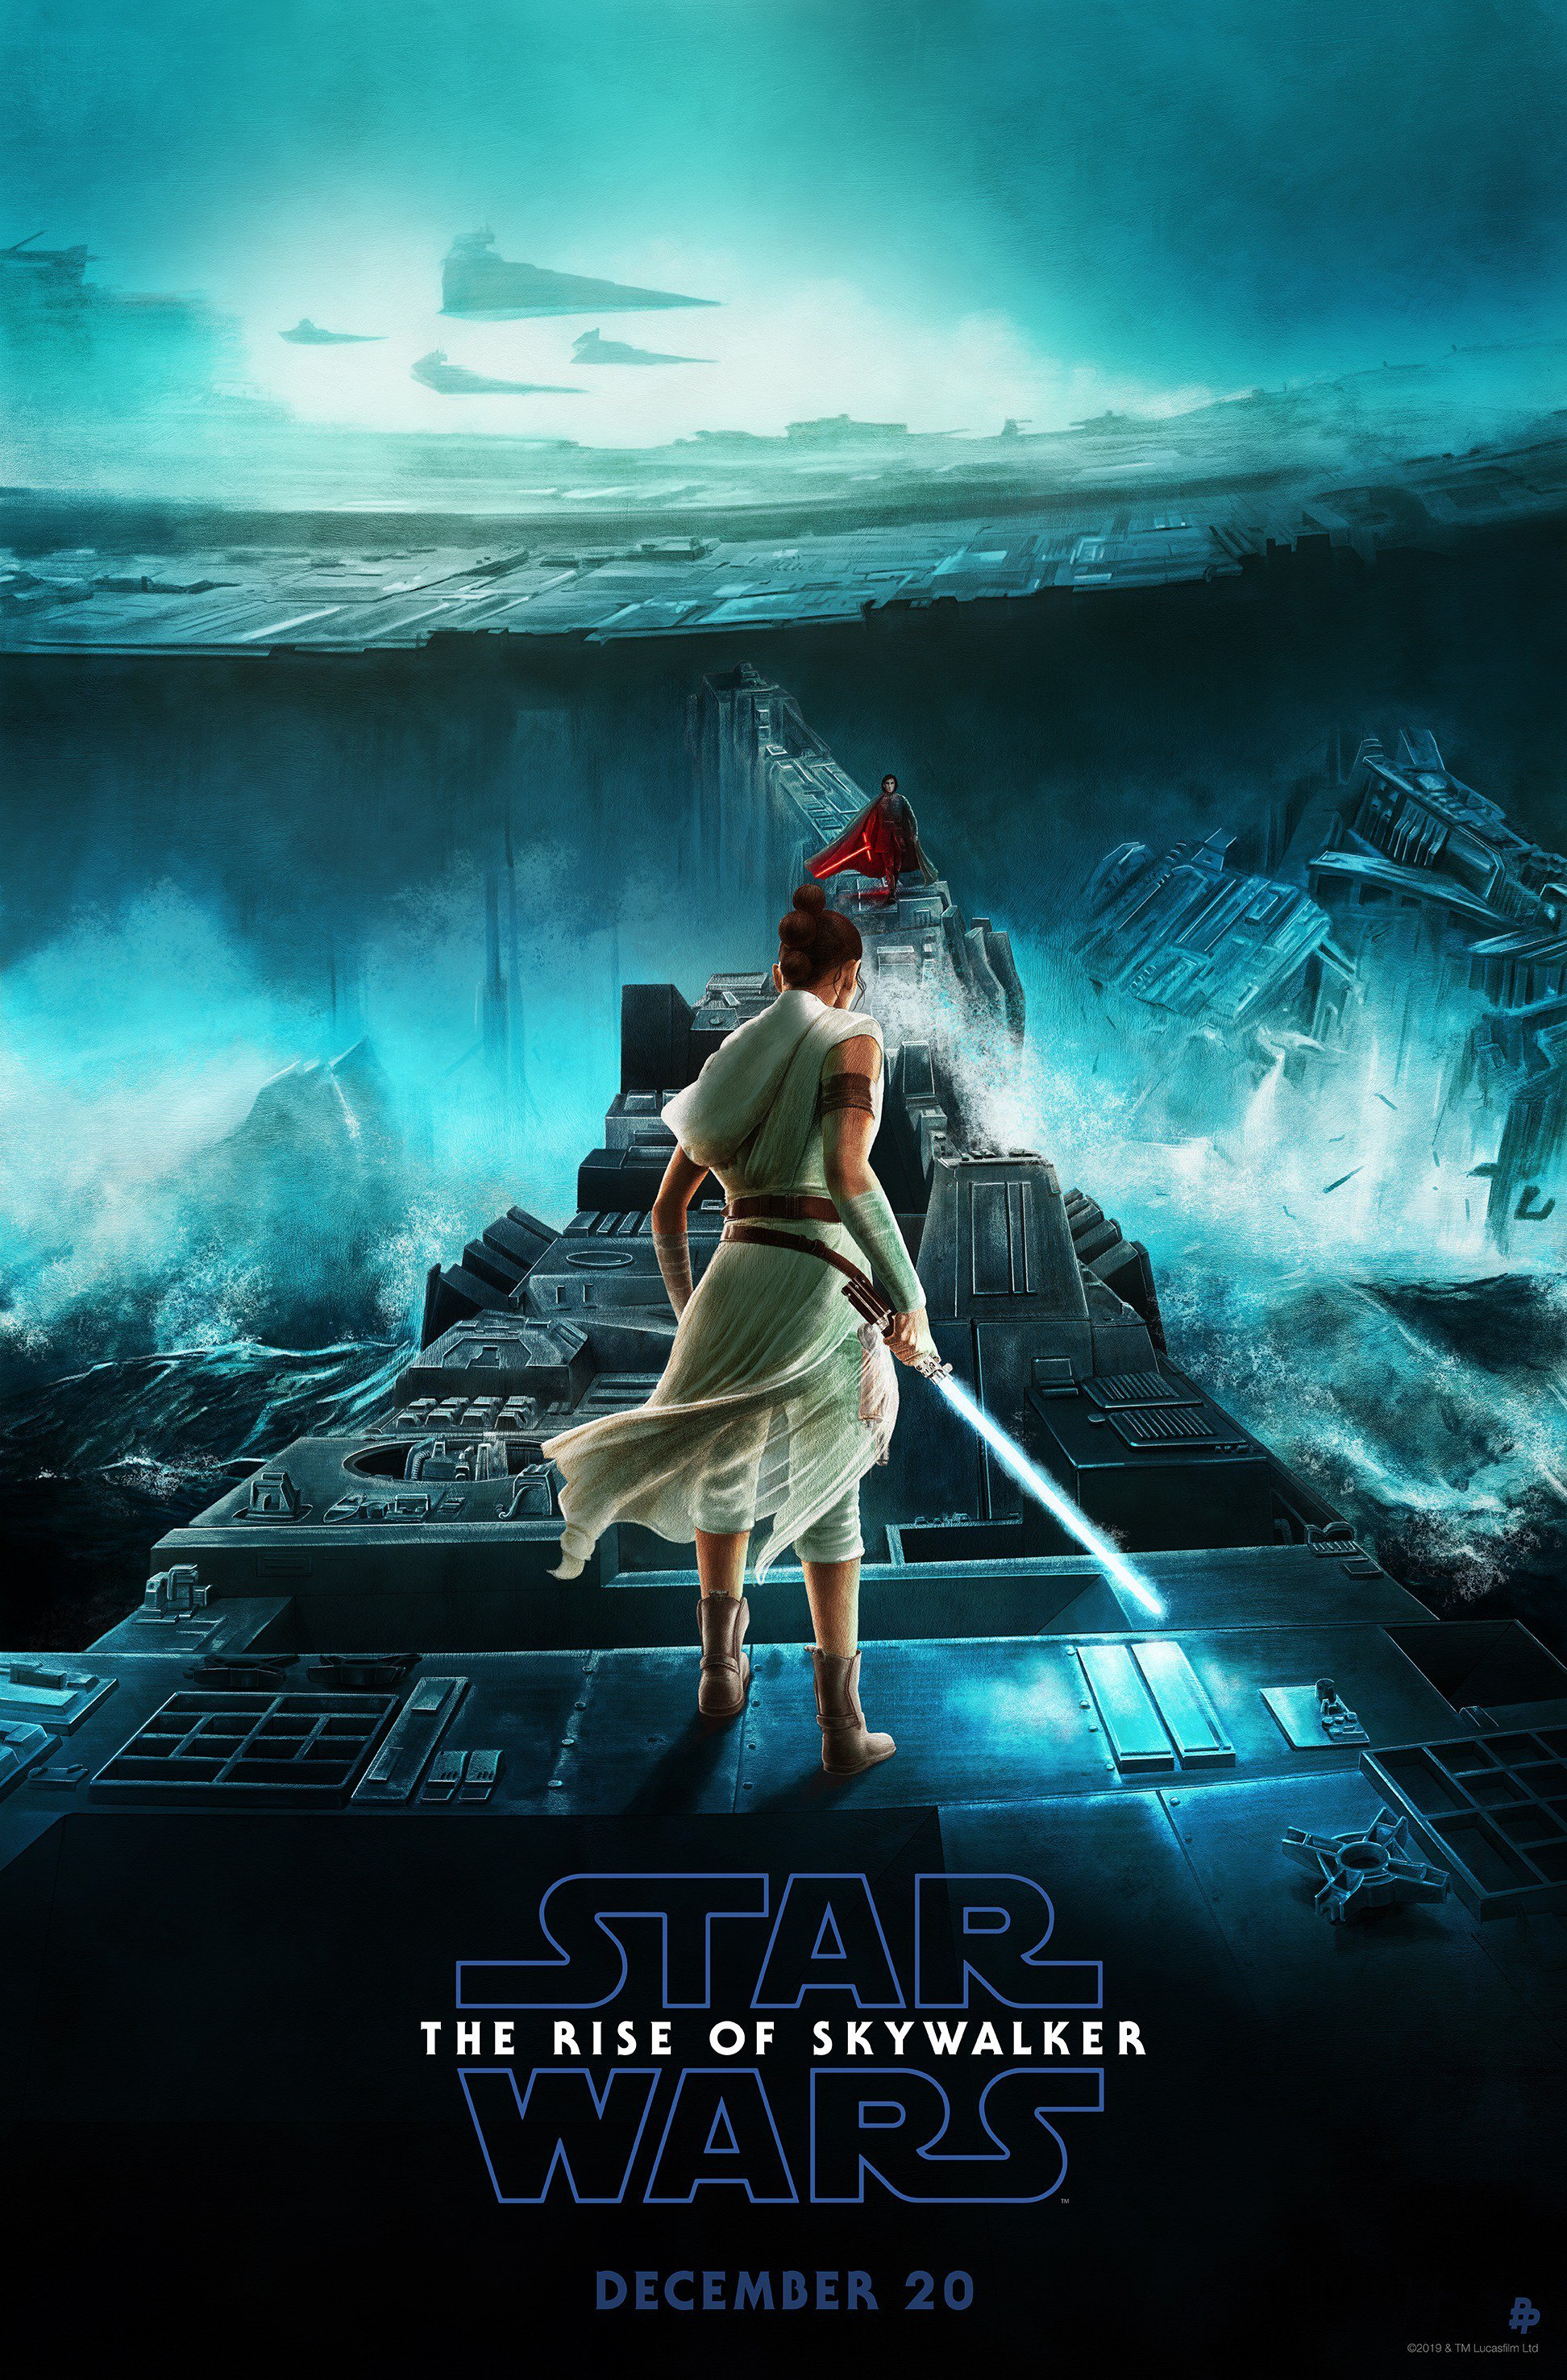 Star Wars The Rise Of Skywalker New Poster And Tv Spot With More Shots And Dialogue Star Wars News Net